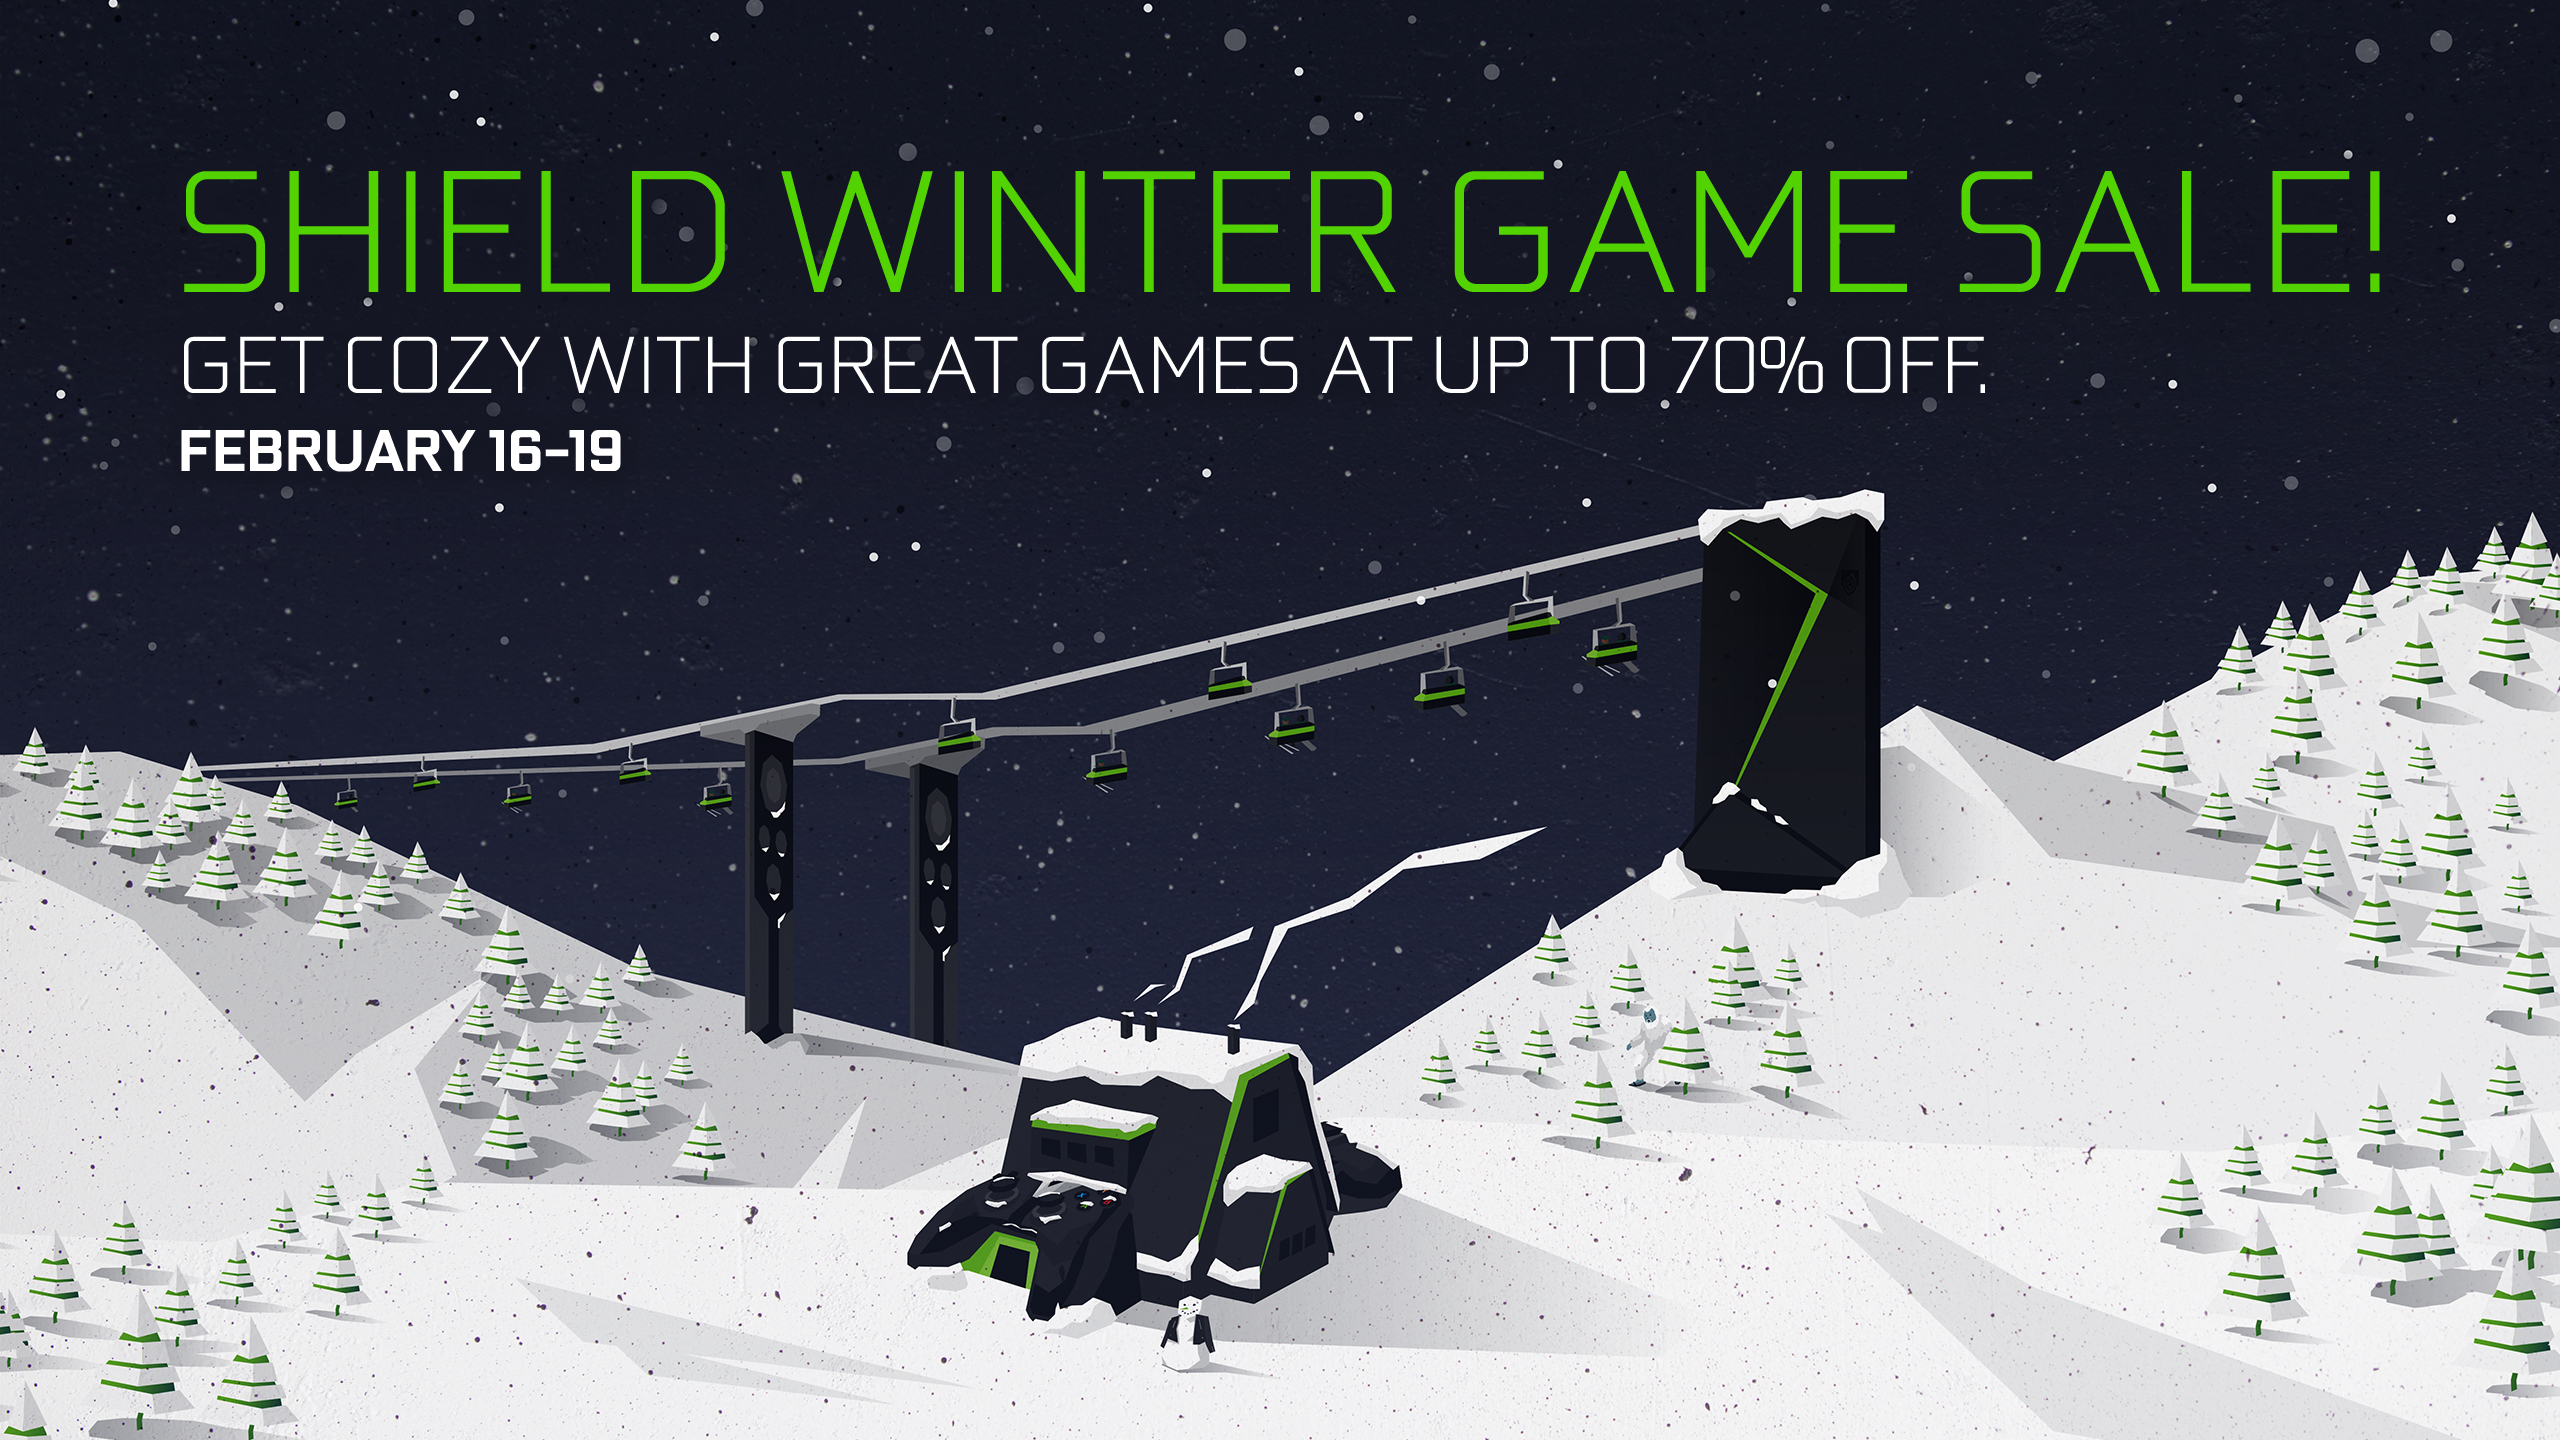 nvidia-shield-winter-game-sale